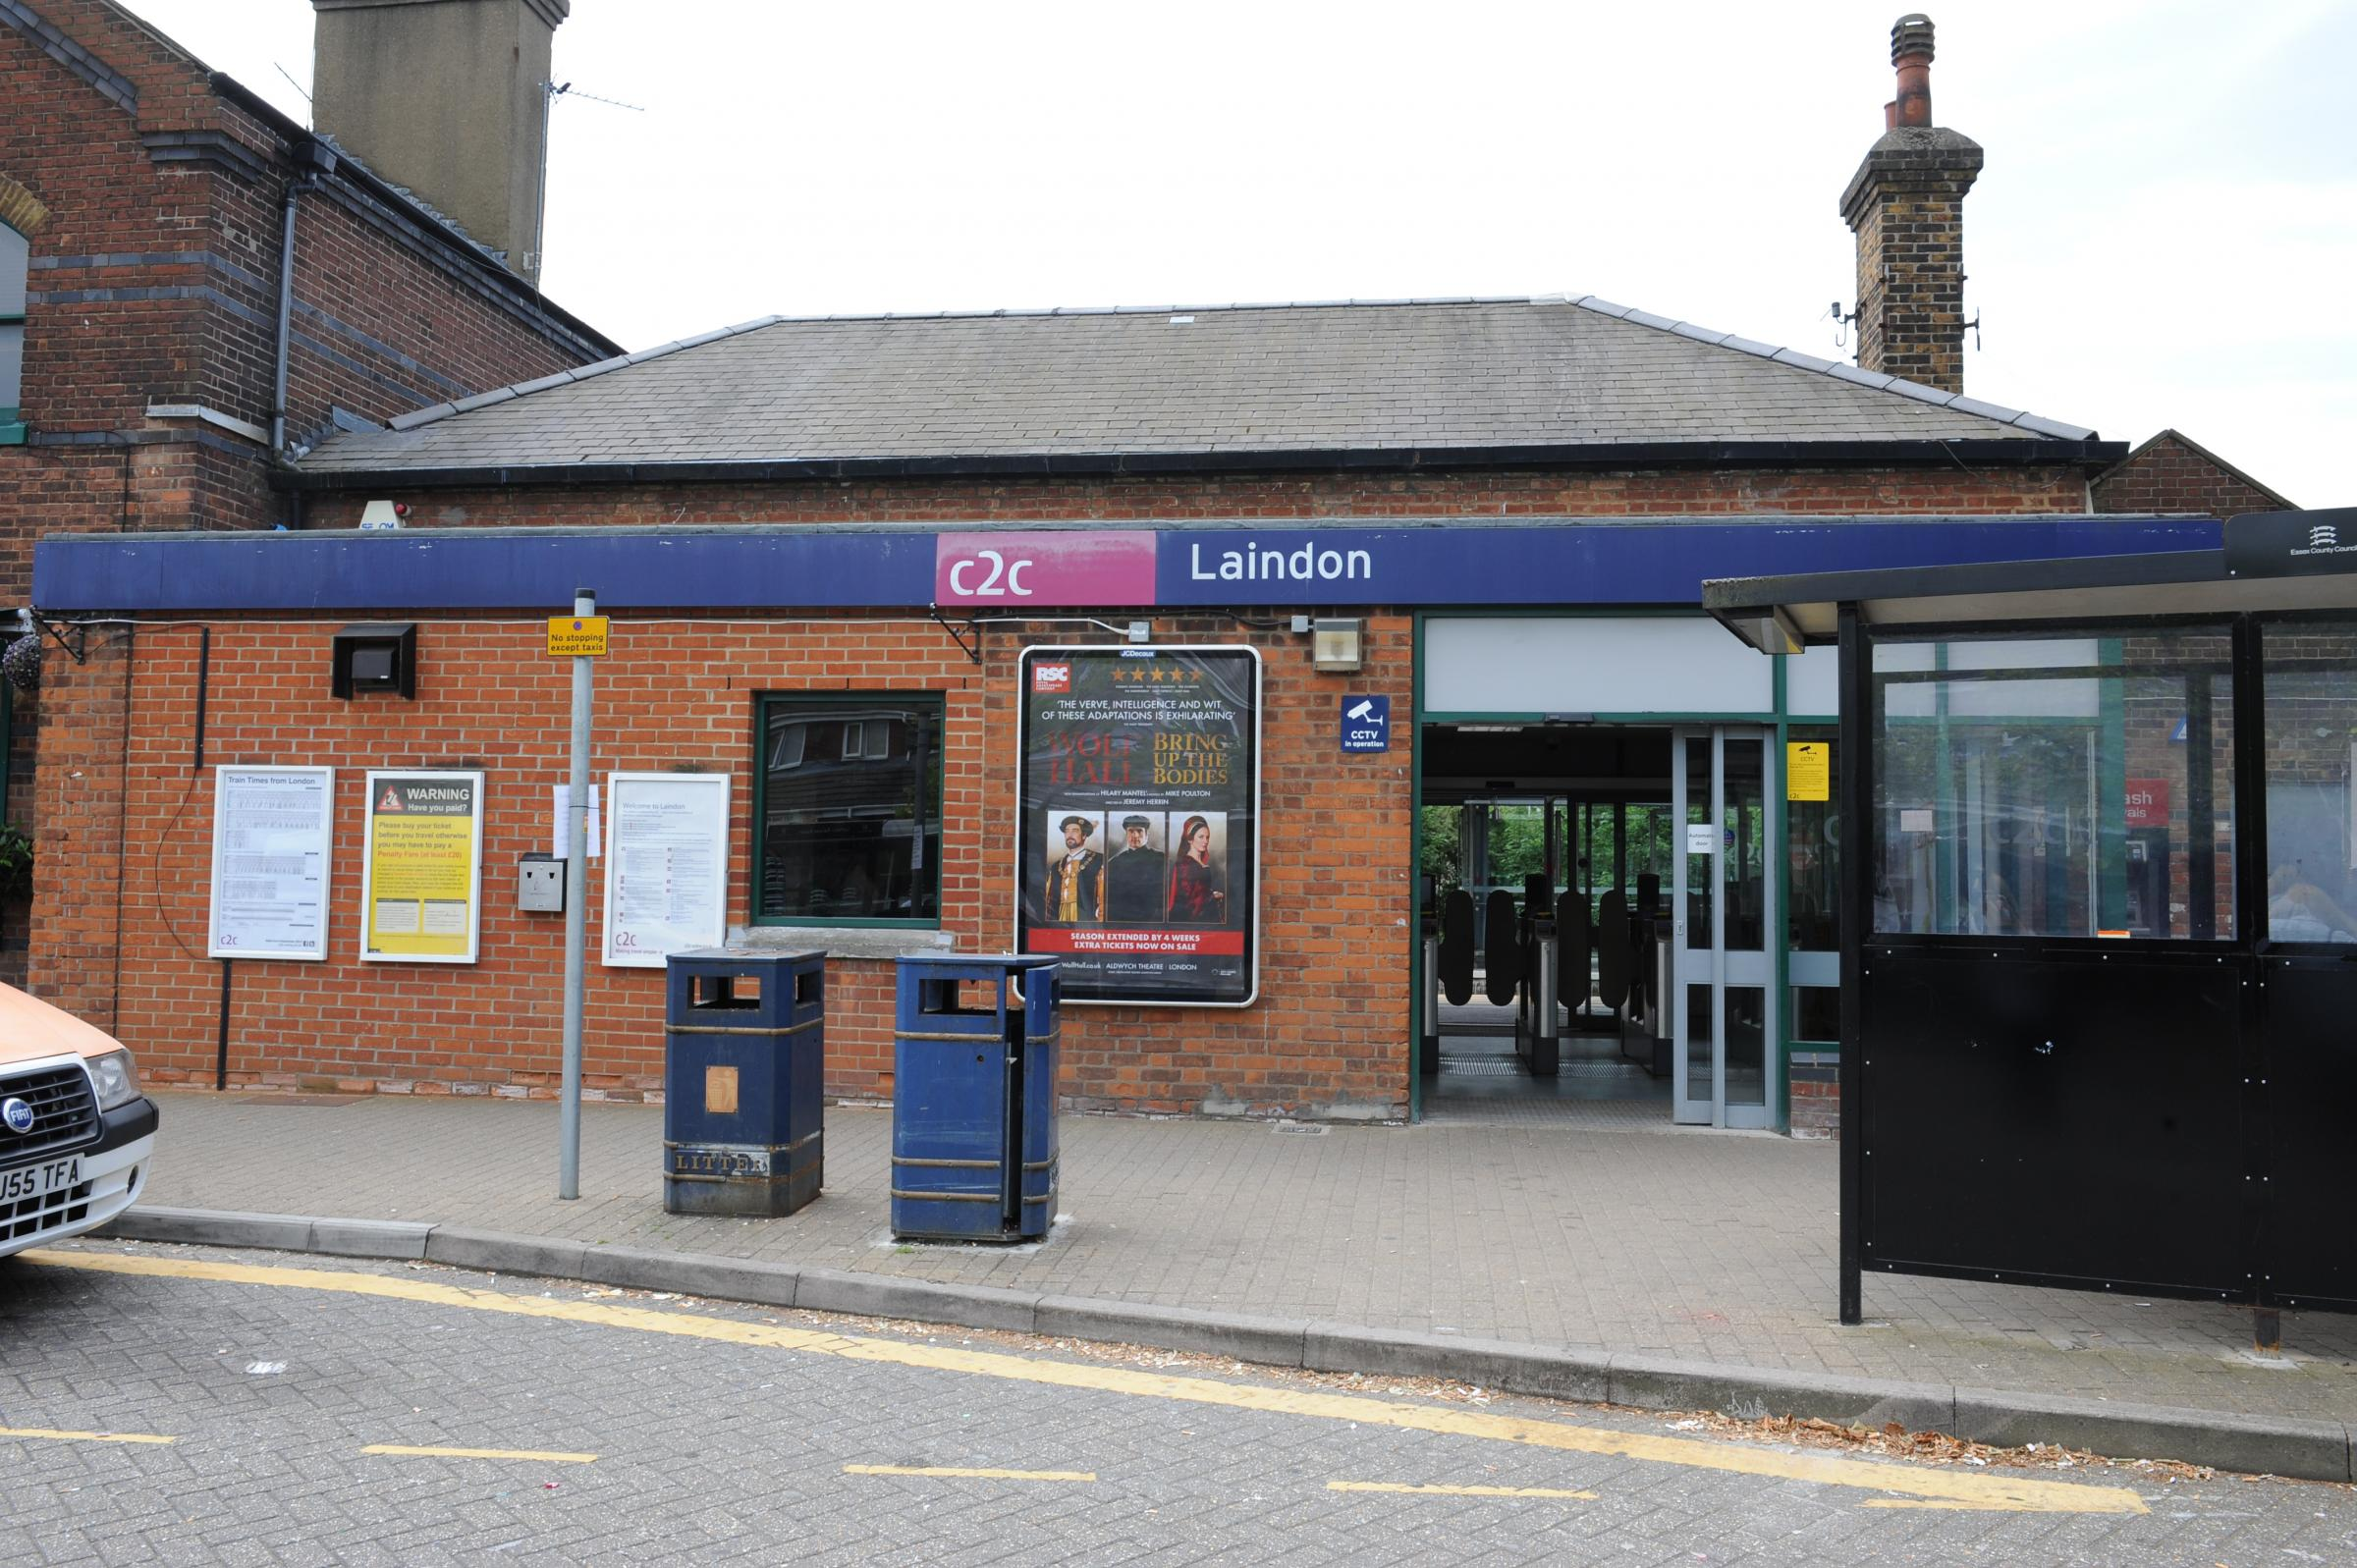 Police investigating attempted burglary at Laindon Station